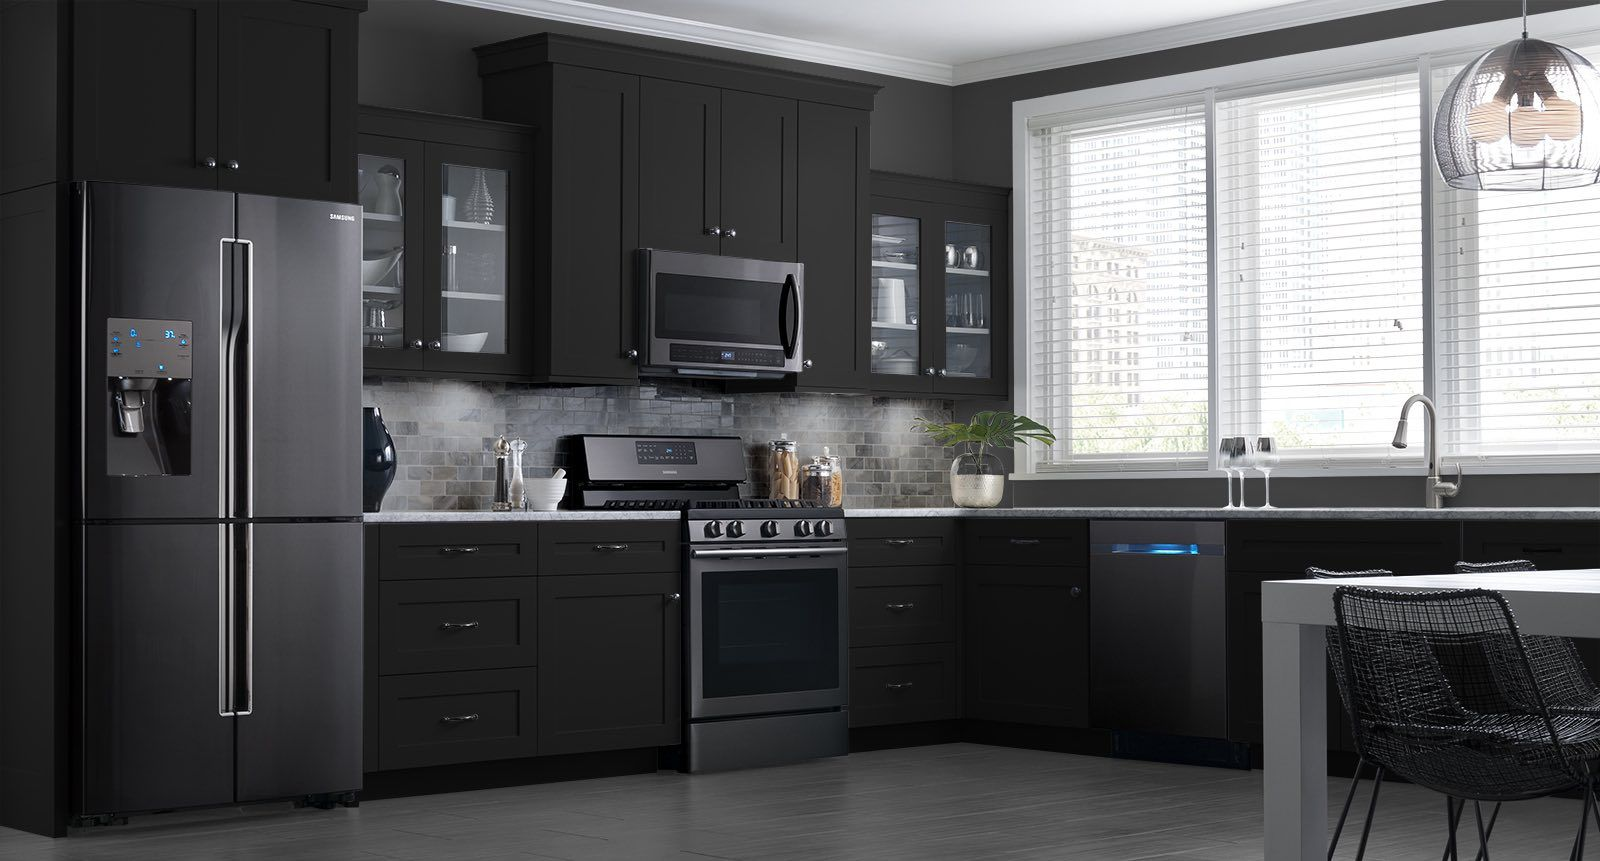 Best These Samsung Black Stainless Steel Appliances Look 400 x 300